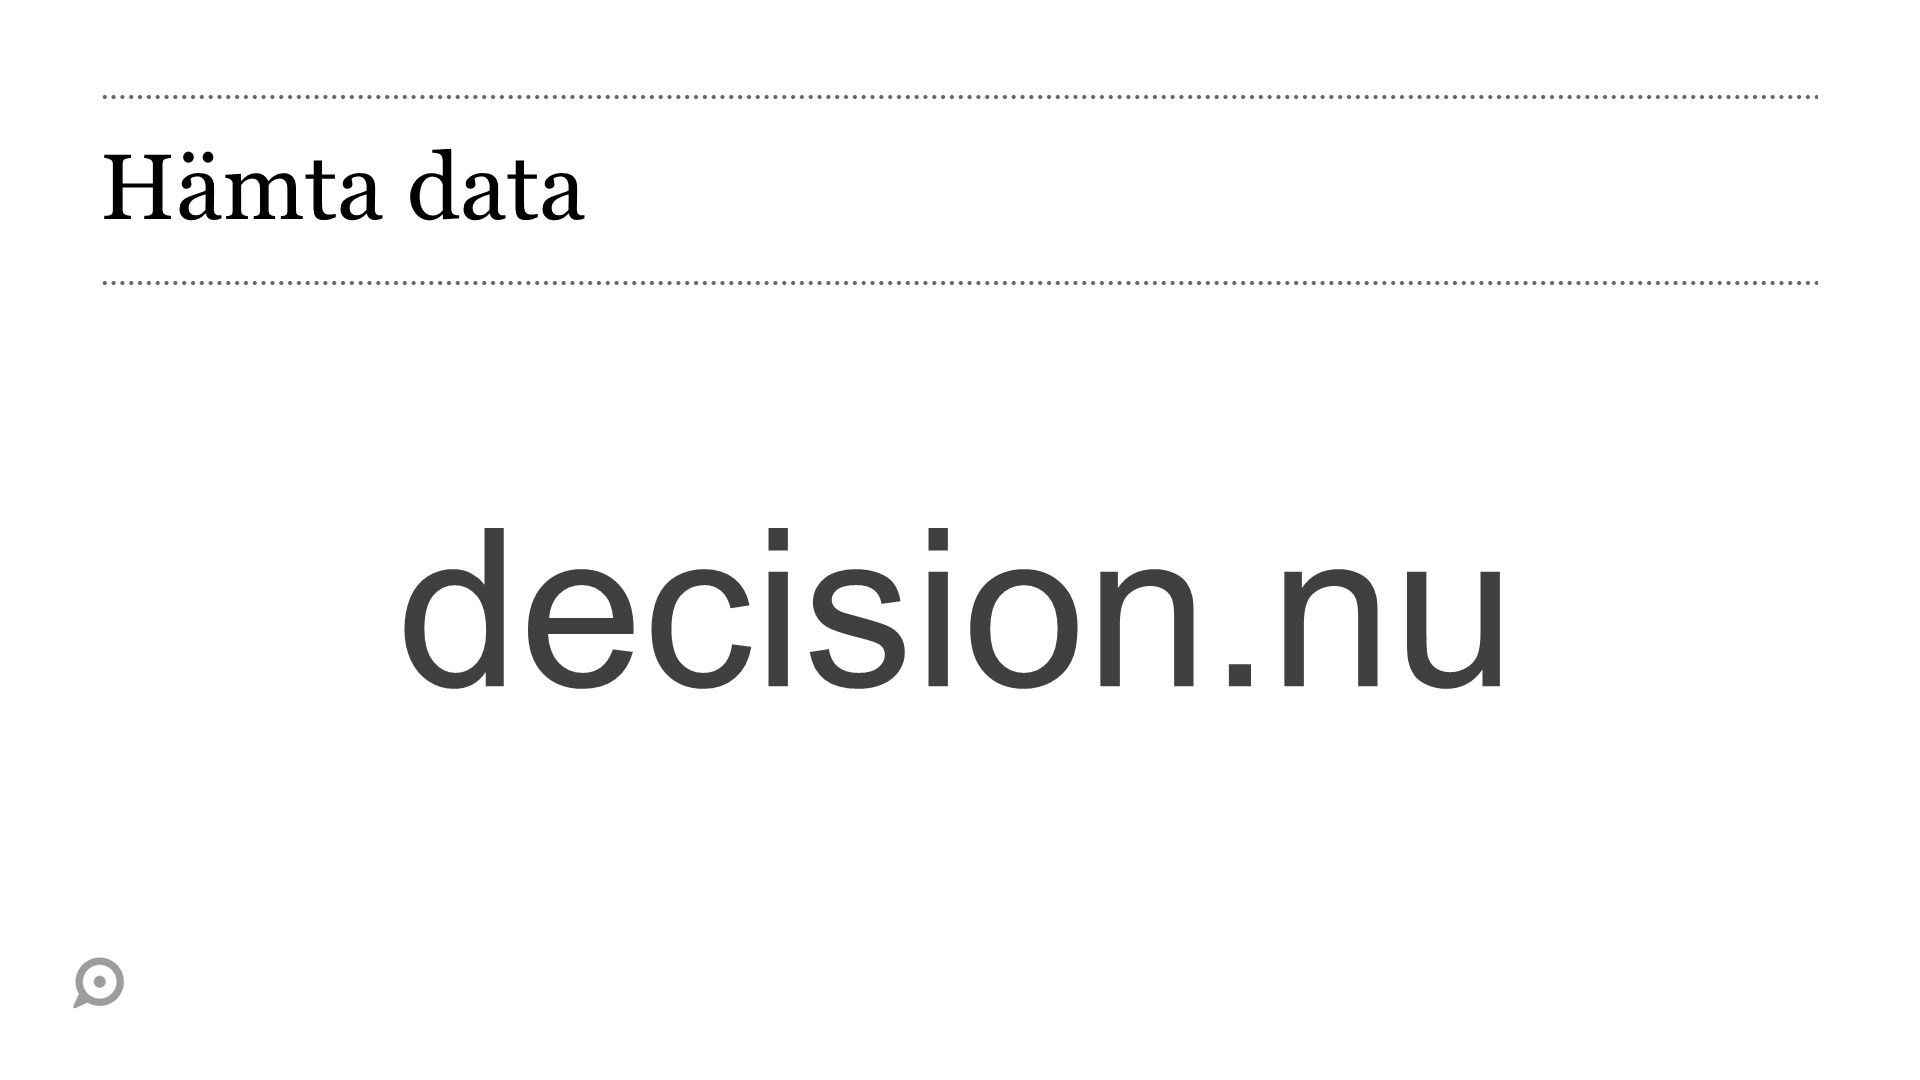 Hämta data decision.nu